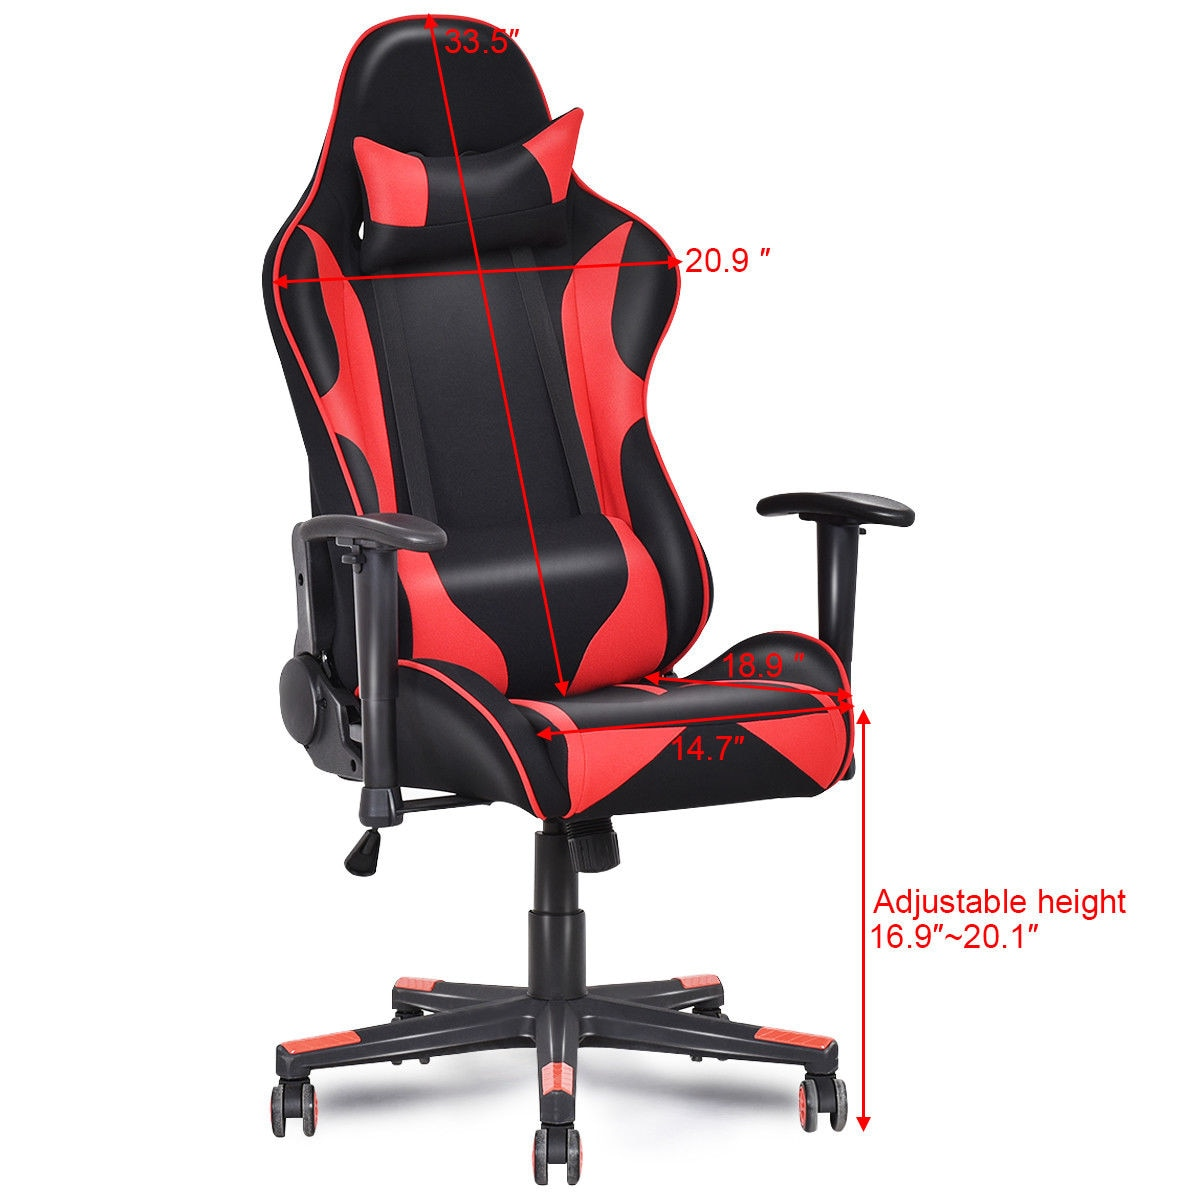 Awe Inspiring Giantex Racing Style High Back Recliner Gaming Chair Modern Mesh Swivel Computer Office Chair Ergonomic Office Furniture Hw55608 Ocoug Best Dining Table And Chair Ideas Images Ocougorg